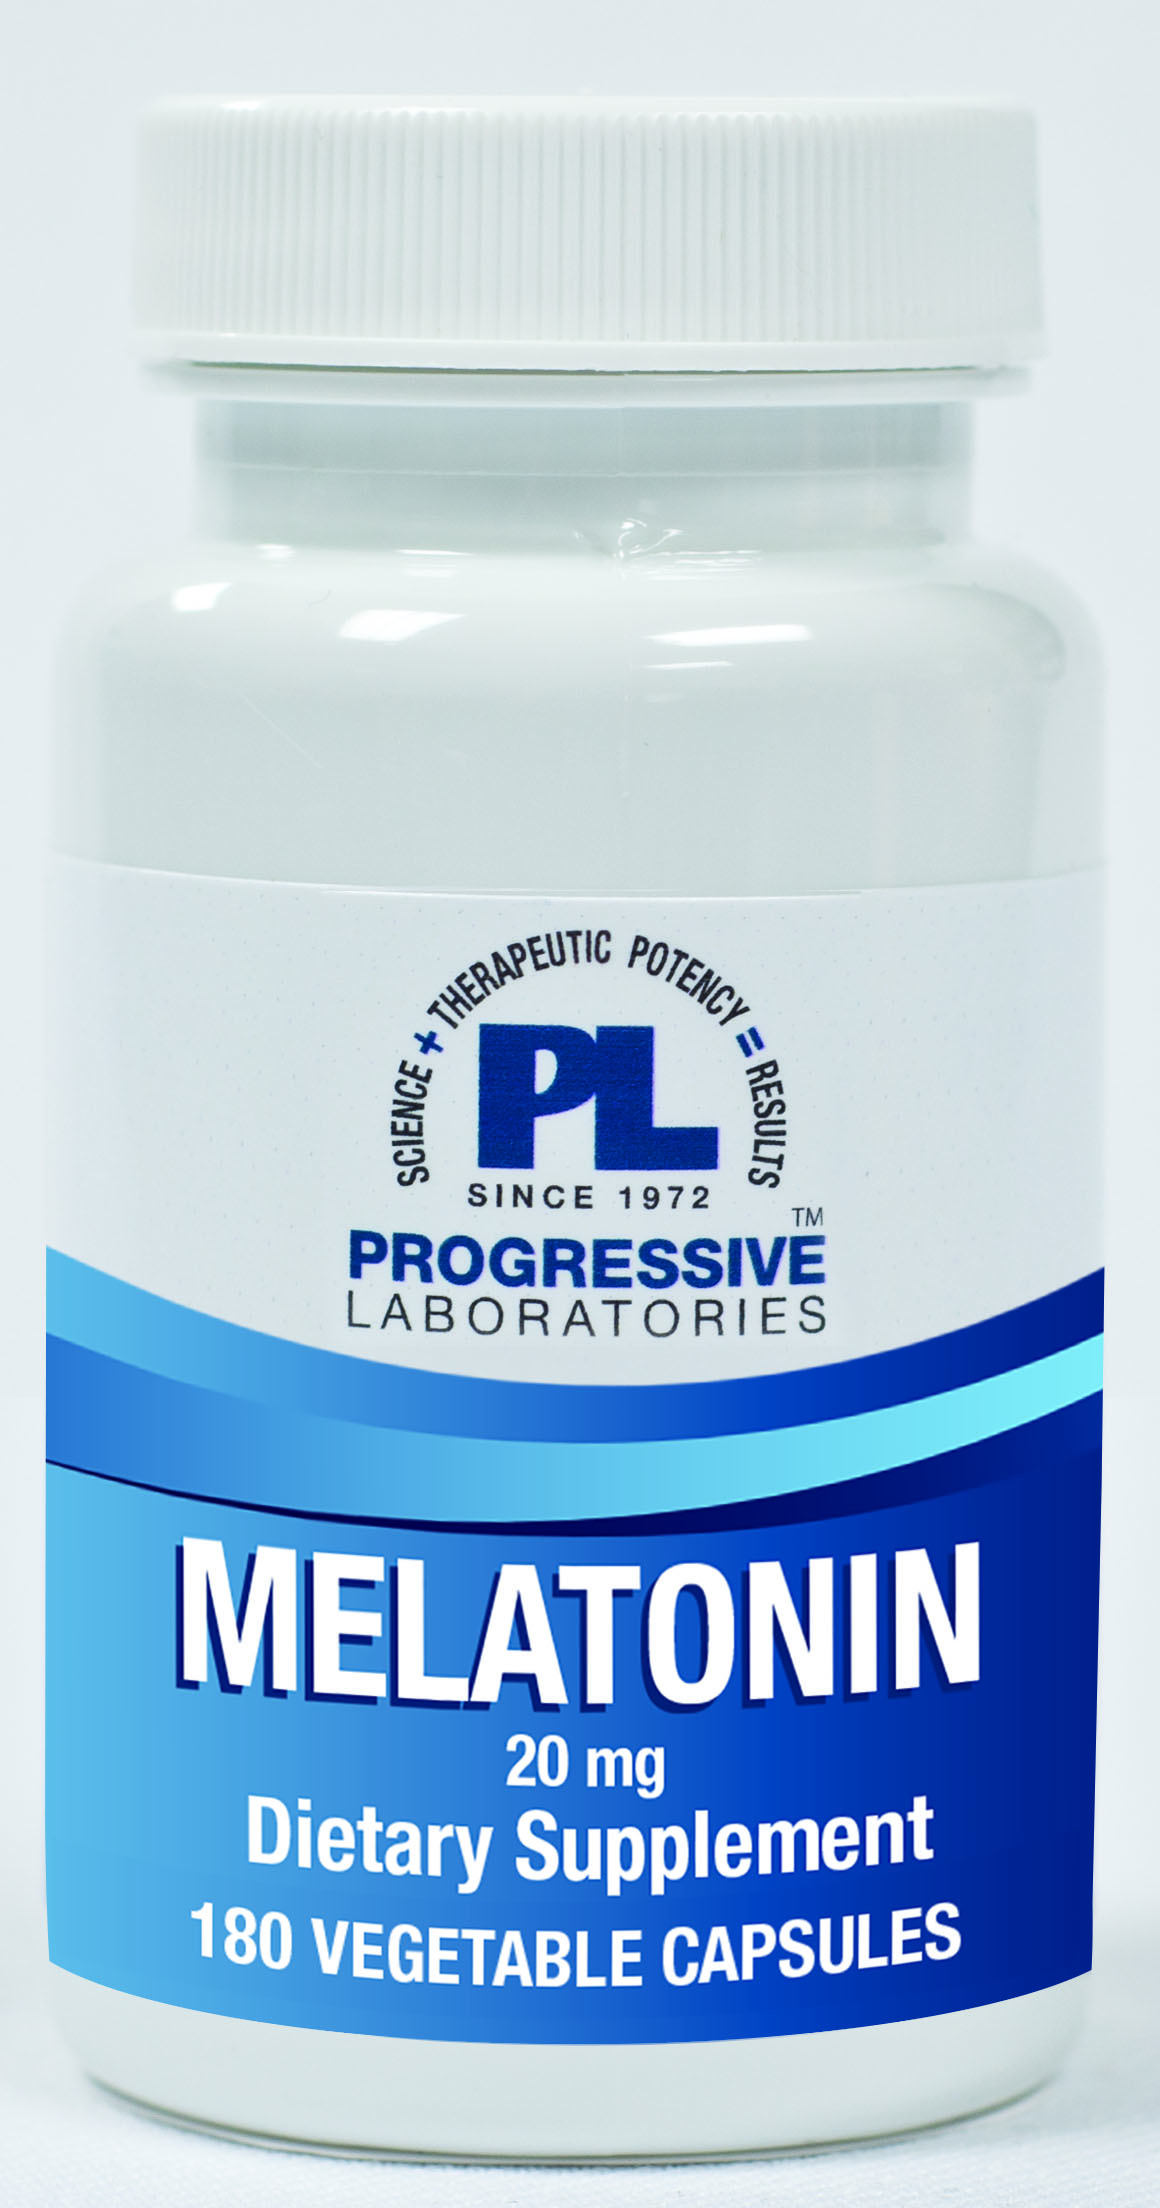 Melatonin 20 - 180 Capsules